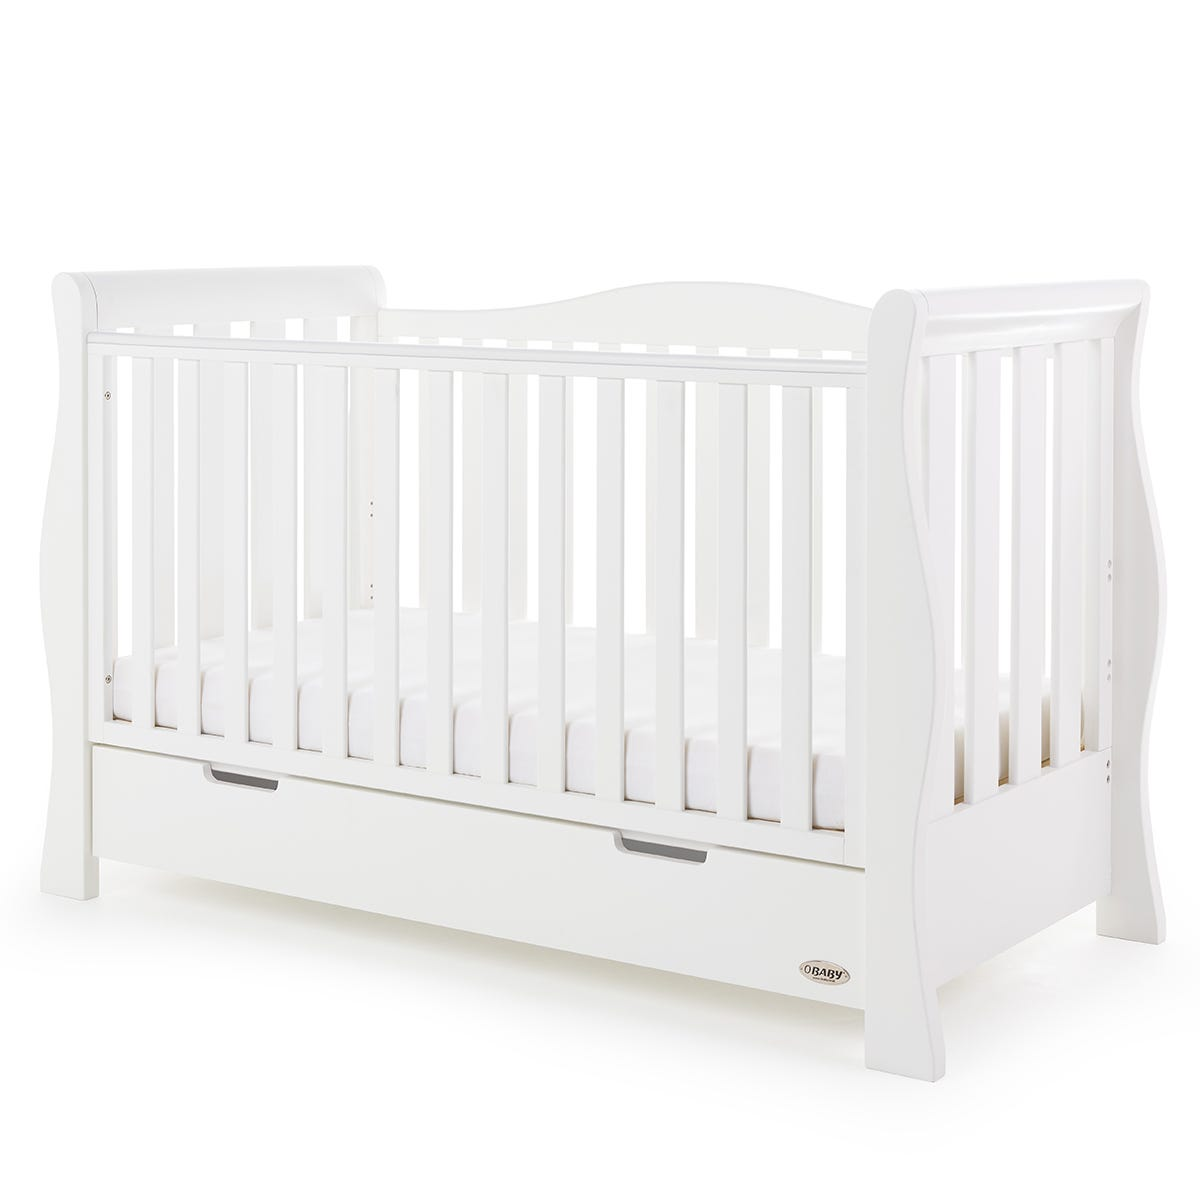 Obaby Stamford Luxe Sleigh Cot Bed White